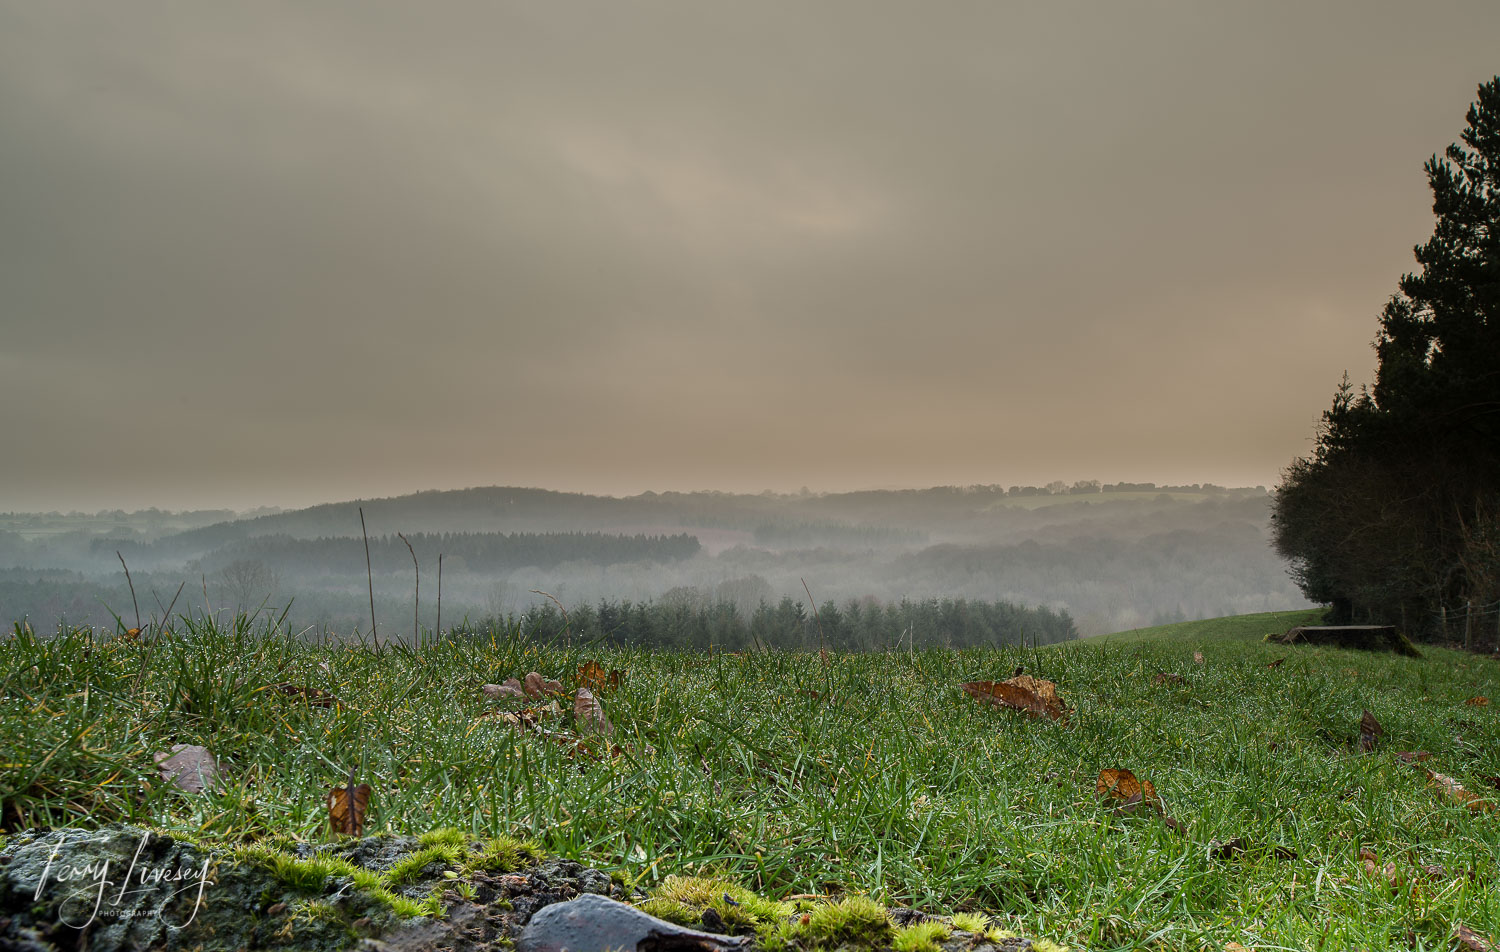 Watching the mist roll over the hills and inbetween trees is quite mesmerizing. This was taken from a vantage point on the outskirts of Bodenham Arboretum, while sitting on the dew soaked grass, and made getting up early in the morning worth while.